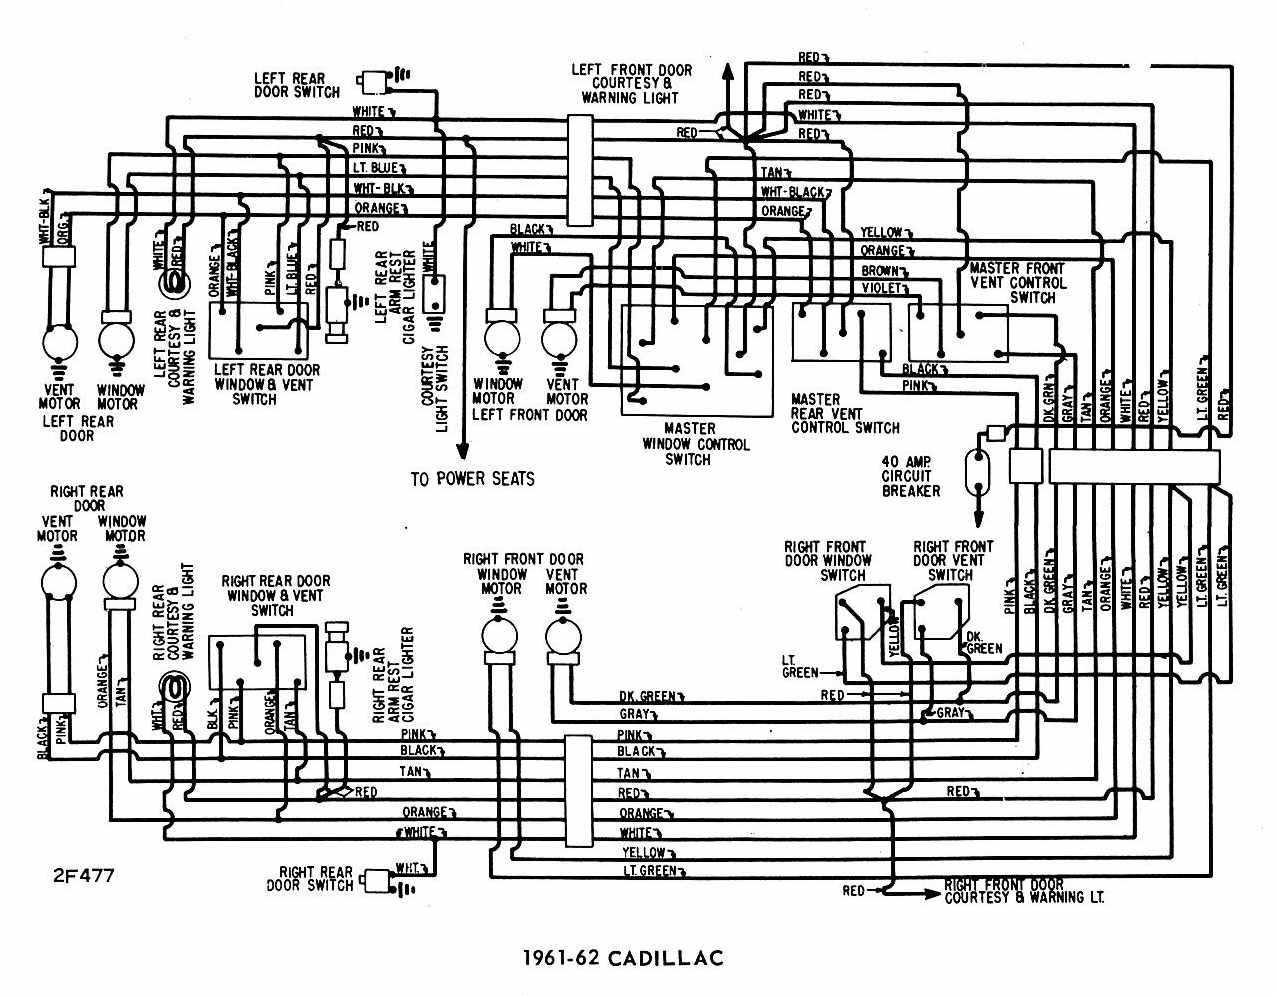 2004 Cadillac Electrical Manual - Online User Manual • on radio diagram, amp circuit, amp wire, amp power, ipod diagram, 2001 nissan maxima fuse box diagram, amp schematic, amp fuse, navigation diagram, amp wiring chart, amp install, speakers diagram, subwoofer diagram, amp wiring kit, amp help, amp installation diagram, amp connectors diagram, amp plug, car amp diagram, circuit diagram,